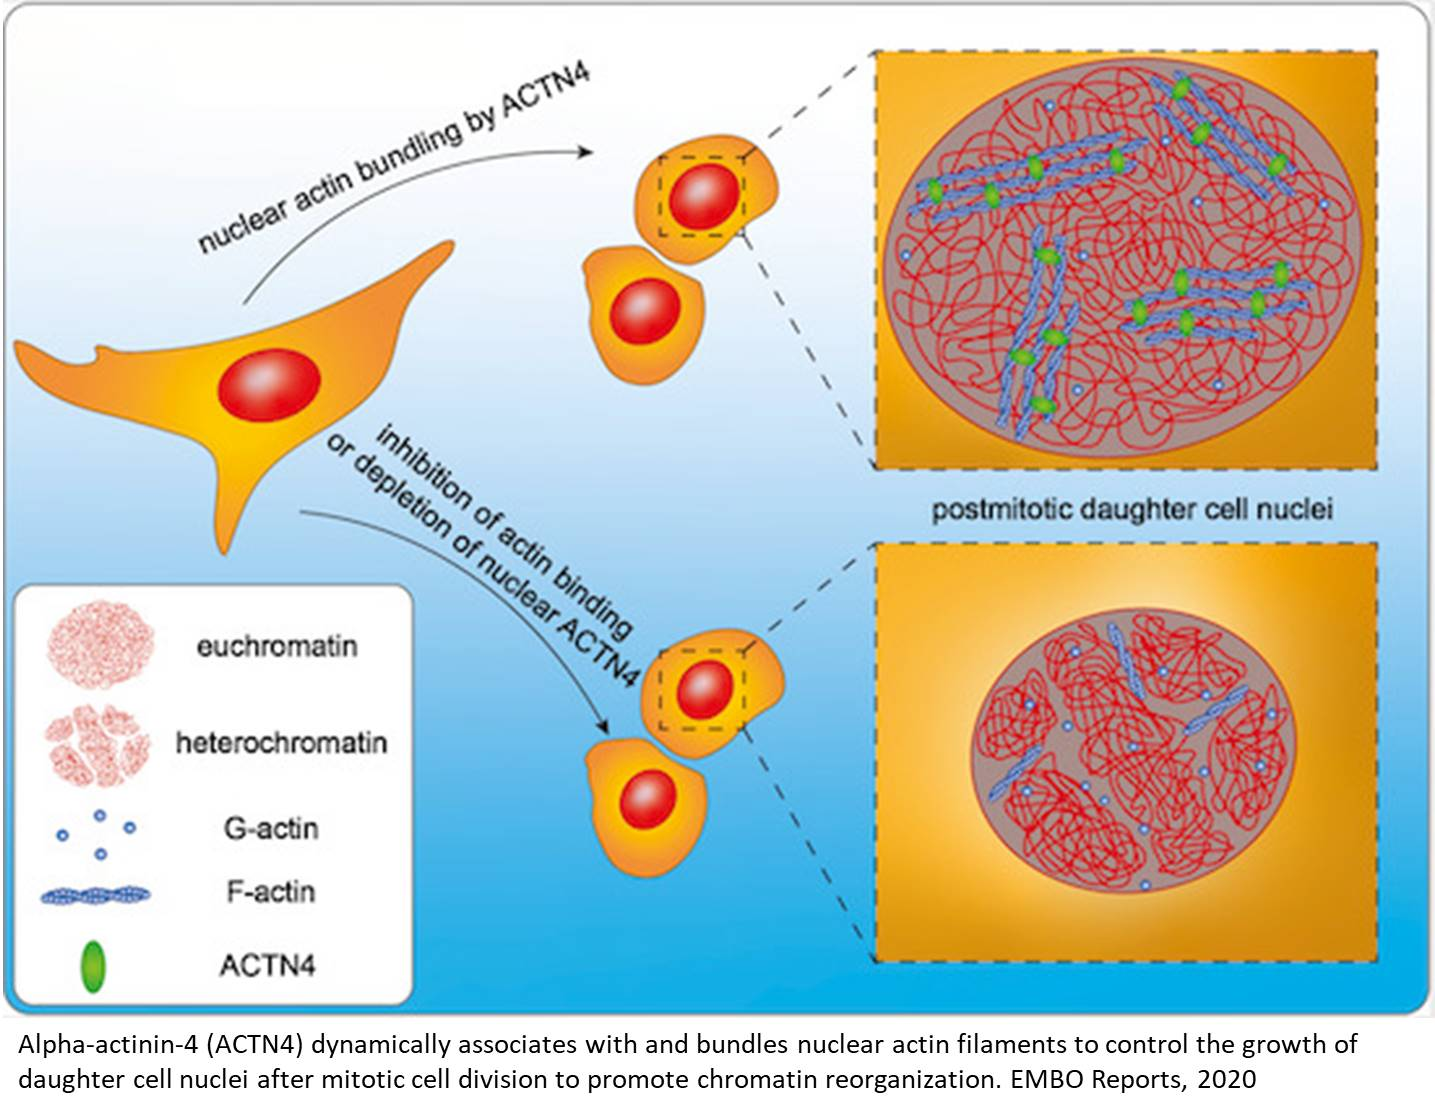 How nuclei enlarge after cell division